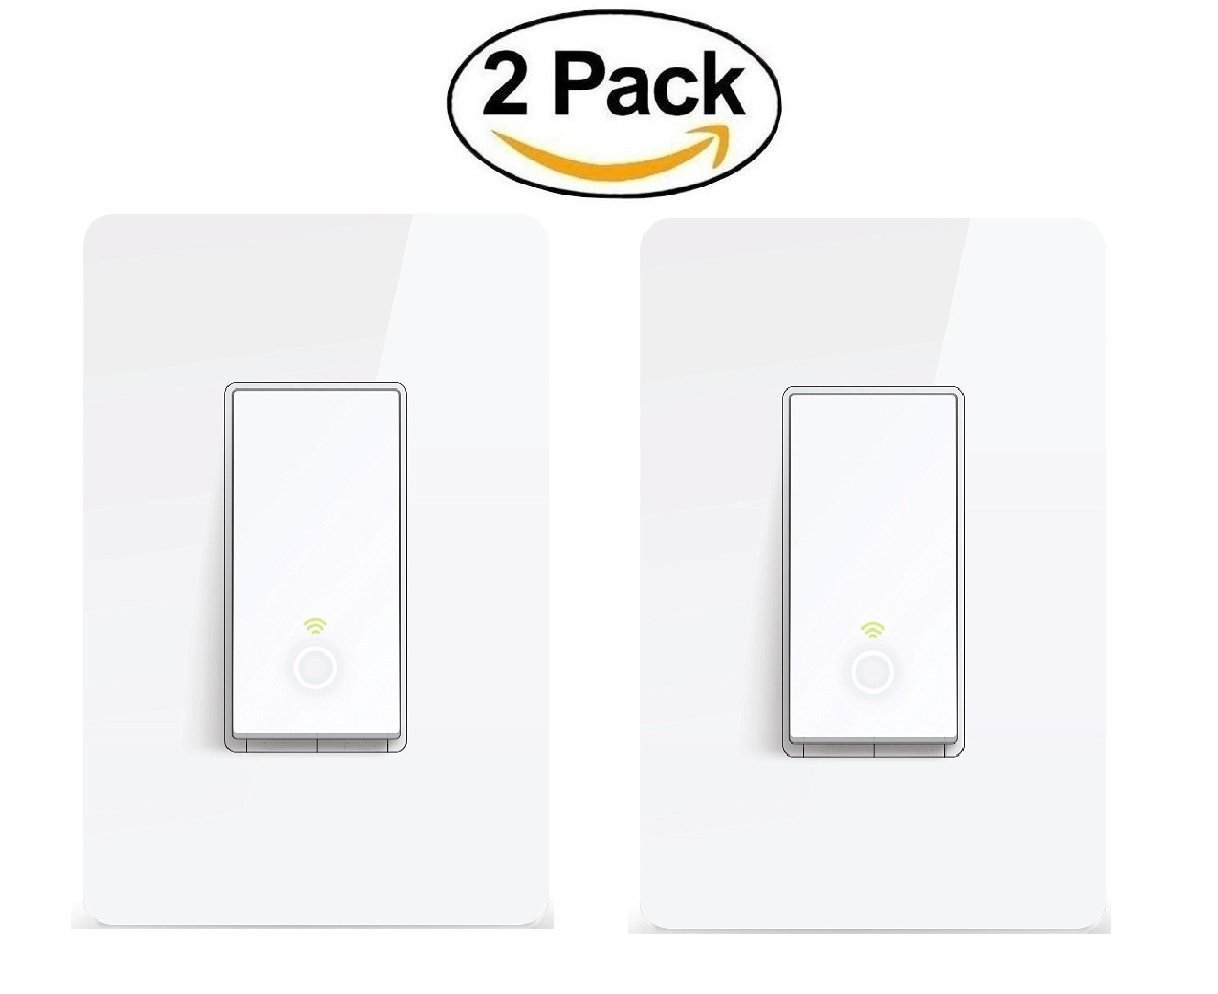 TP-Link Smart Wi-Fi Light Switch, No Hub Required, Single Pole, Control Your Fixtures From Anywhere (HS200), Works with Amazon Alexa Kit (2-Pack)